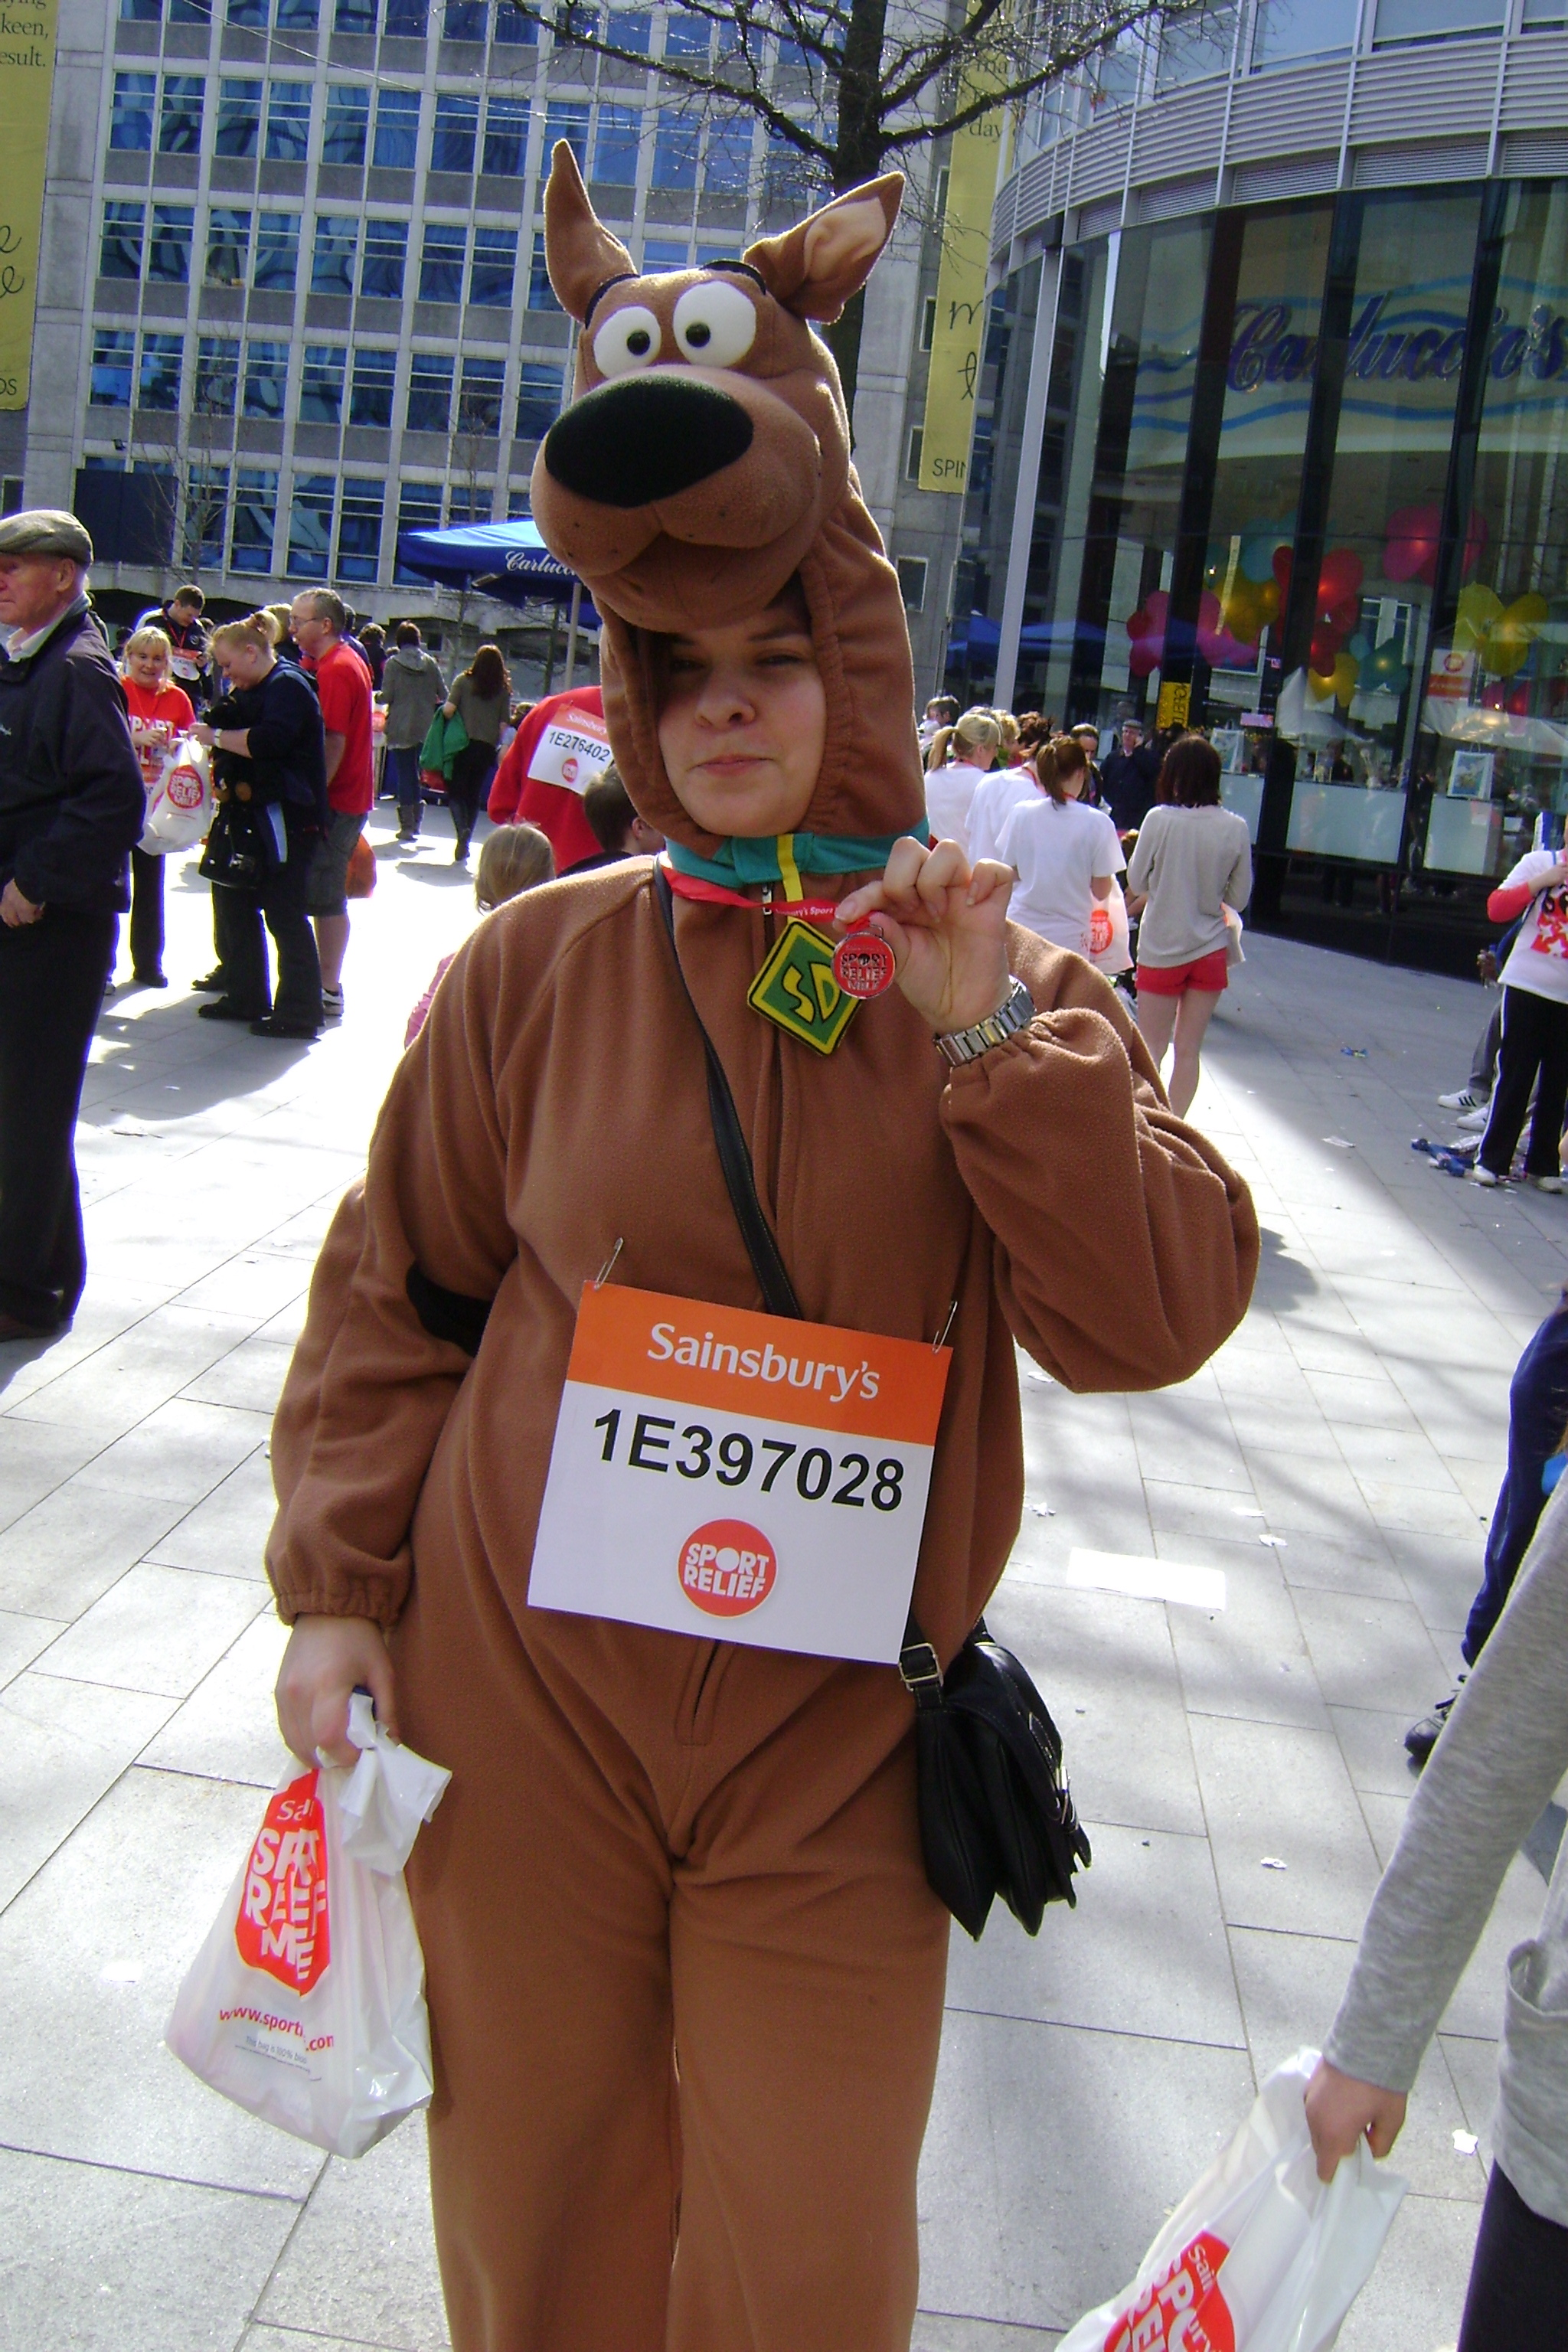 Sports Relief 2012: I did the Mile Run!